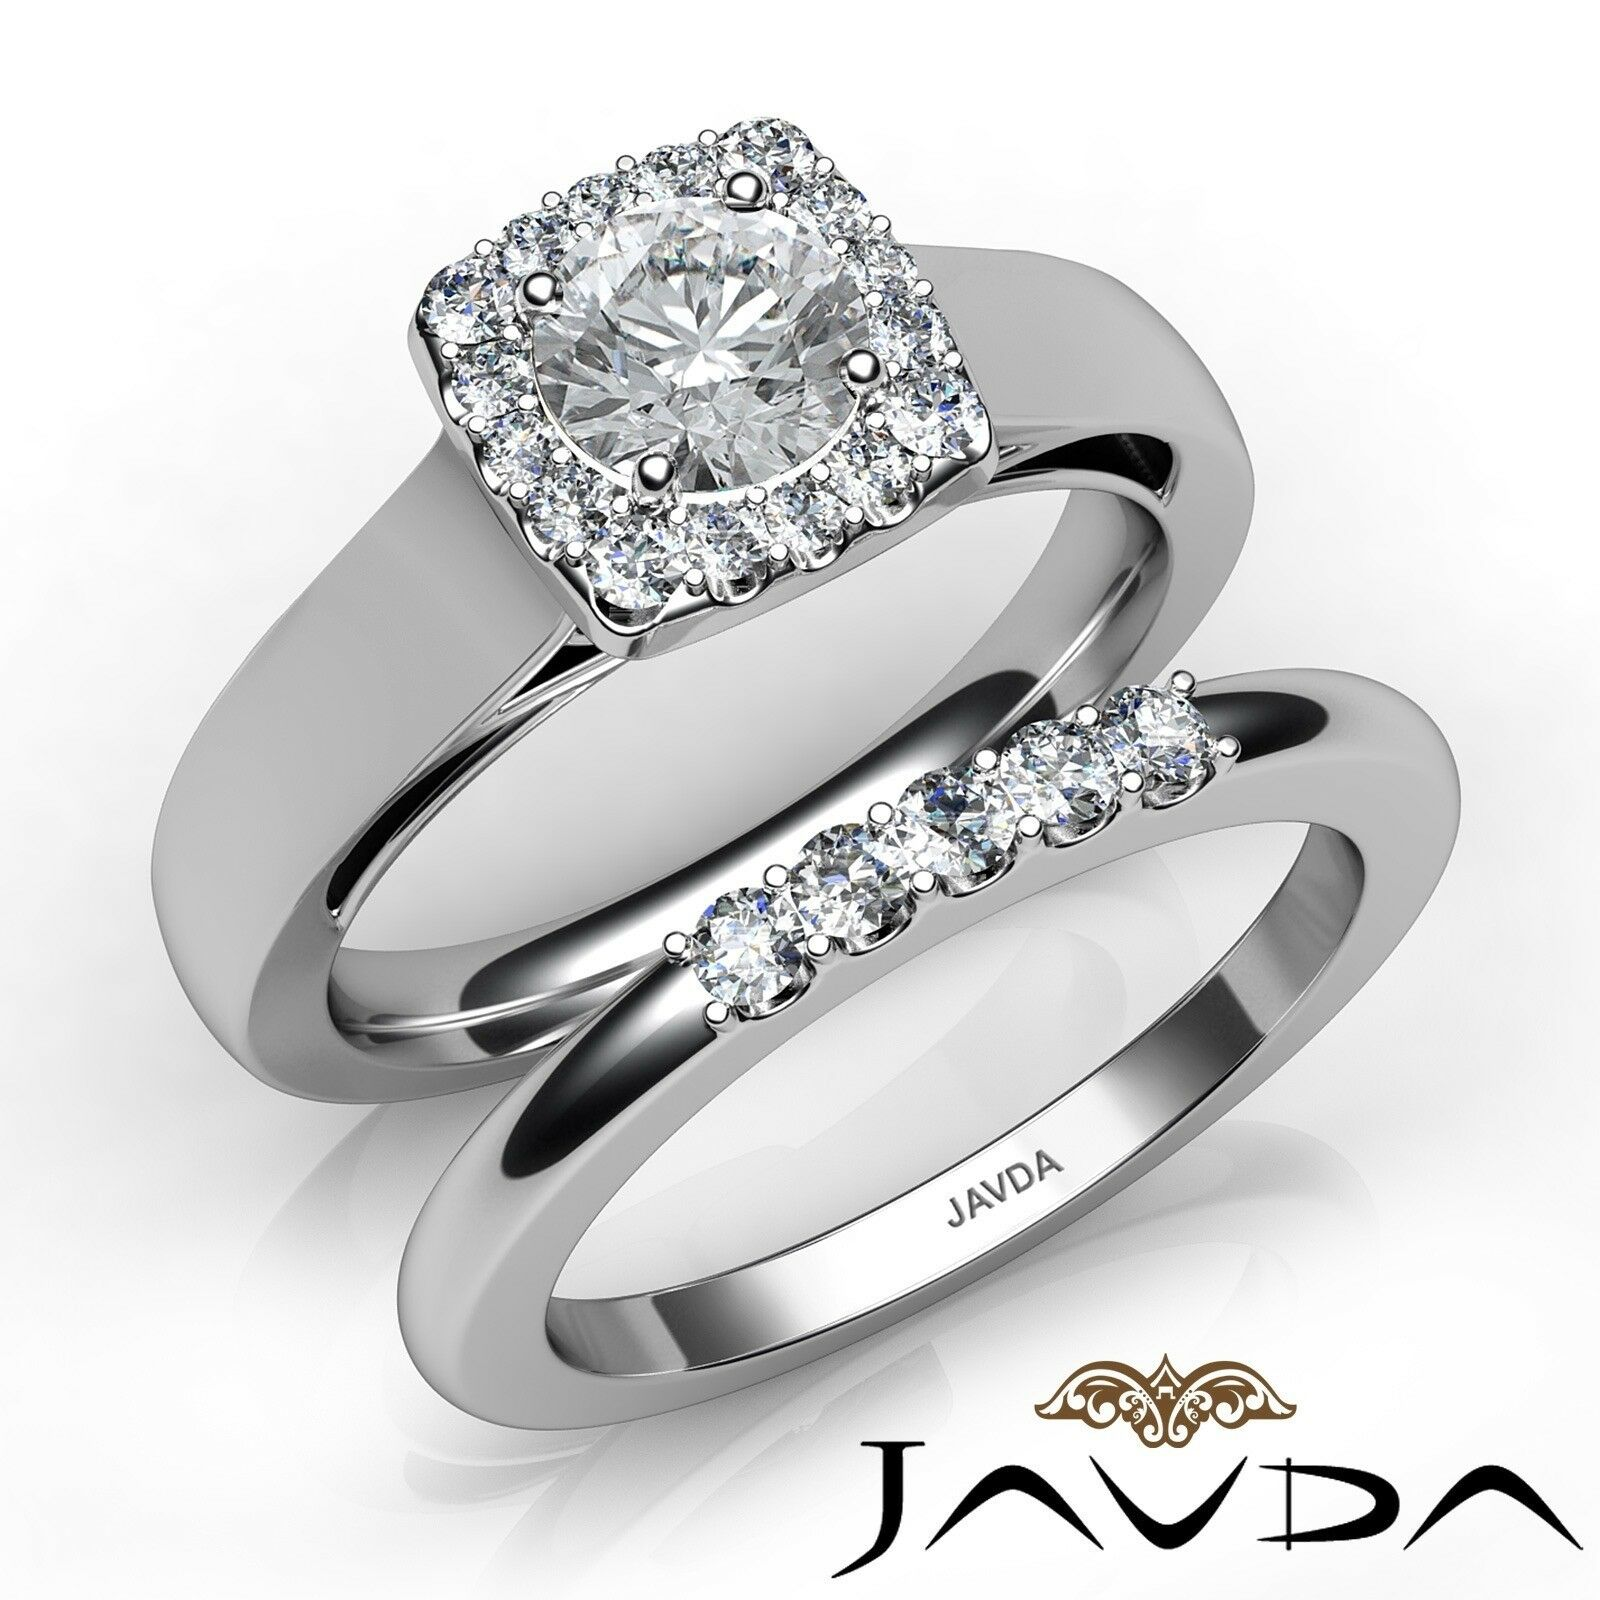 1ctw Halo Filigree Bridal Set Pave Round Diamond Engagement Ring GIA E-VVS2 Gold